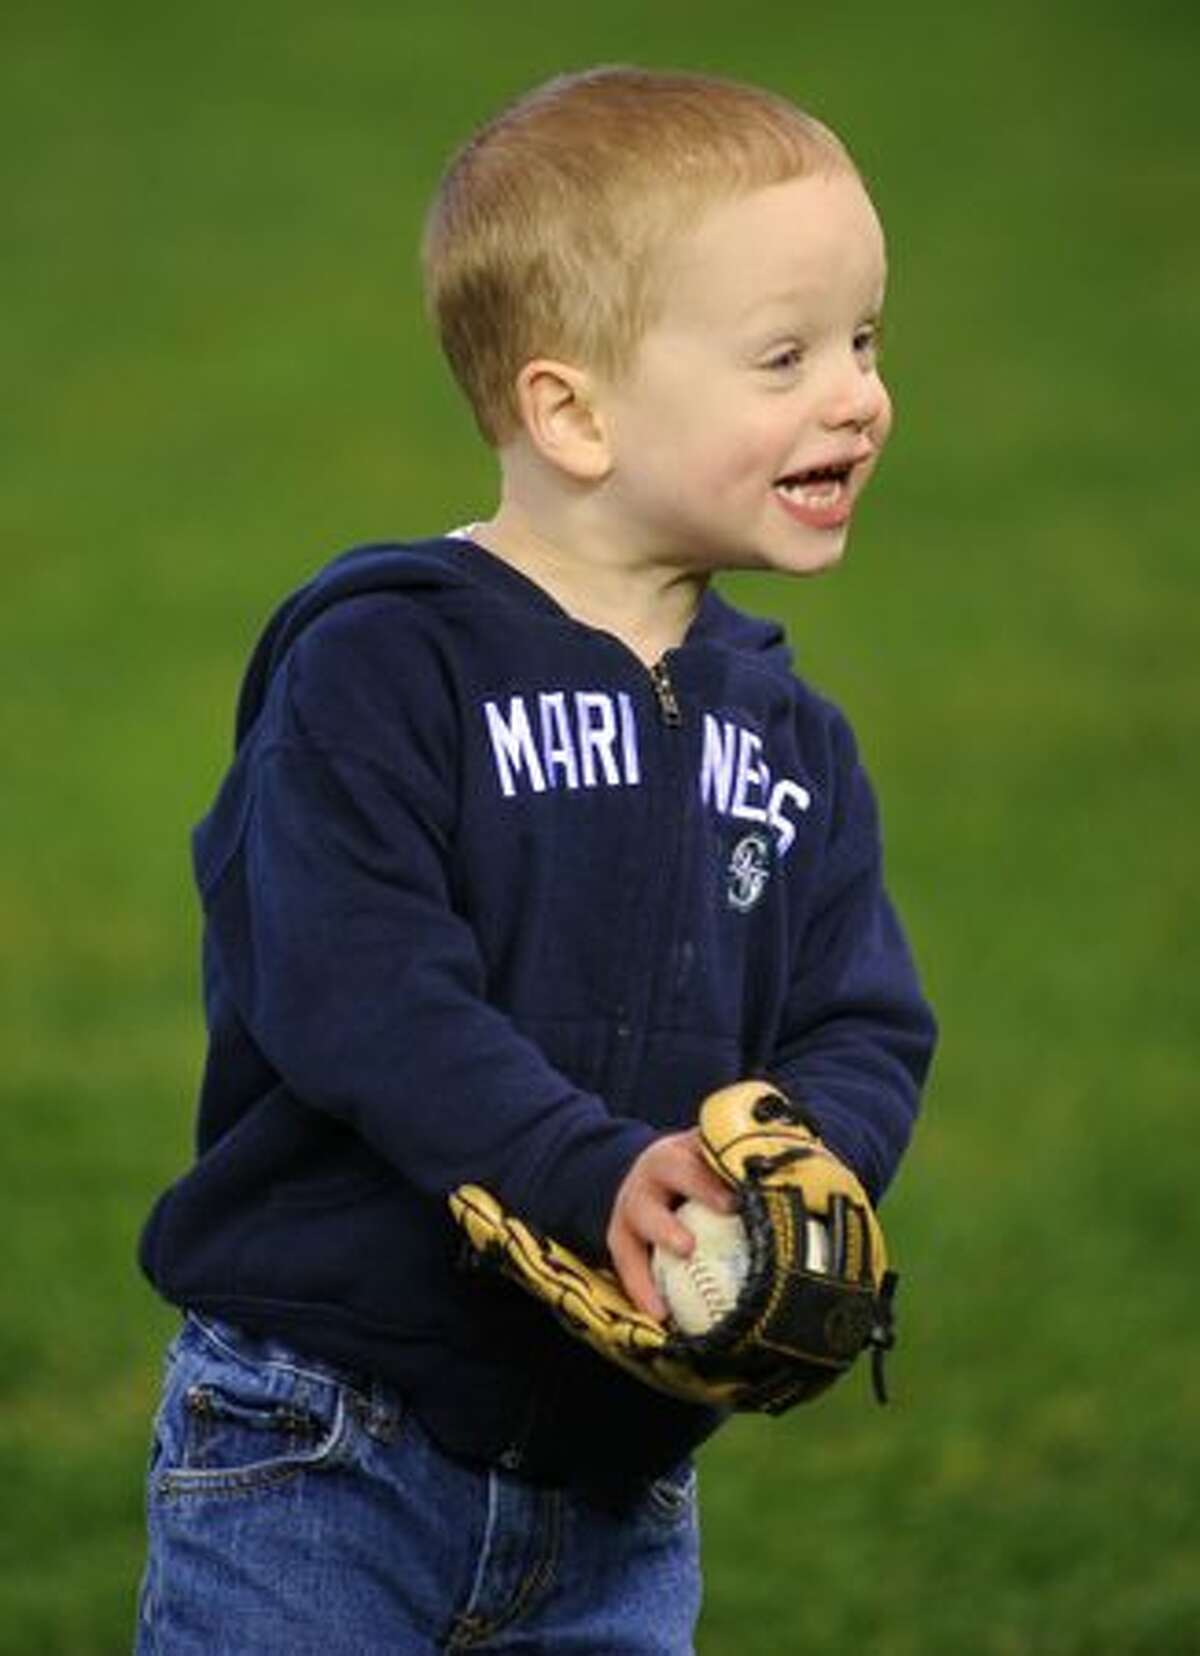 Dylan Clementz, 2, reacts to catching a ball.